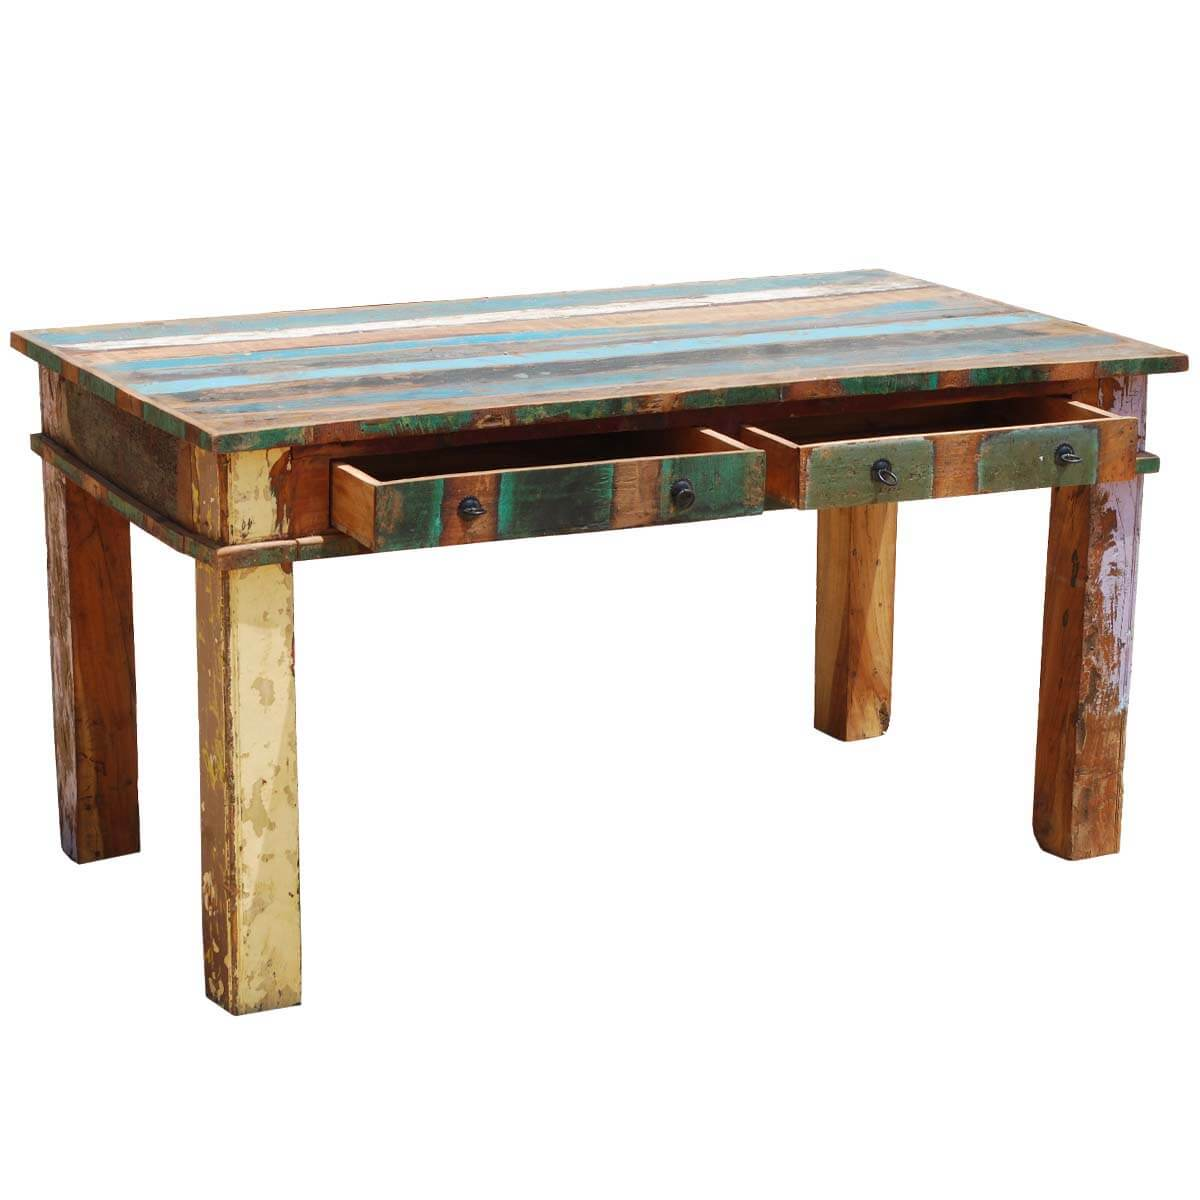 Reclaimed Wood Dining Room Table ~ Reclaimed wood rustic dining room table furniture